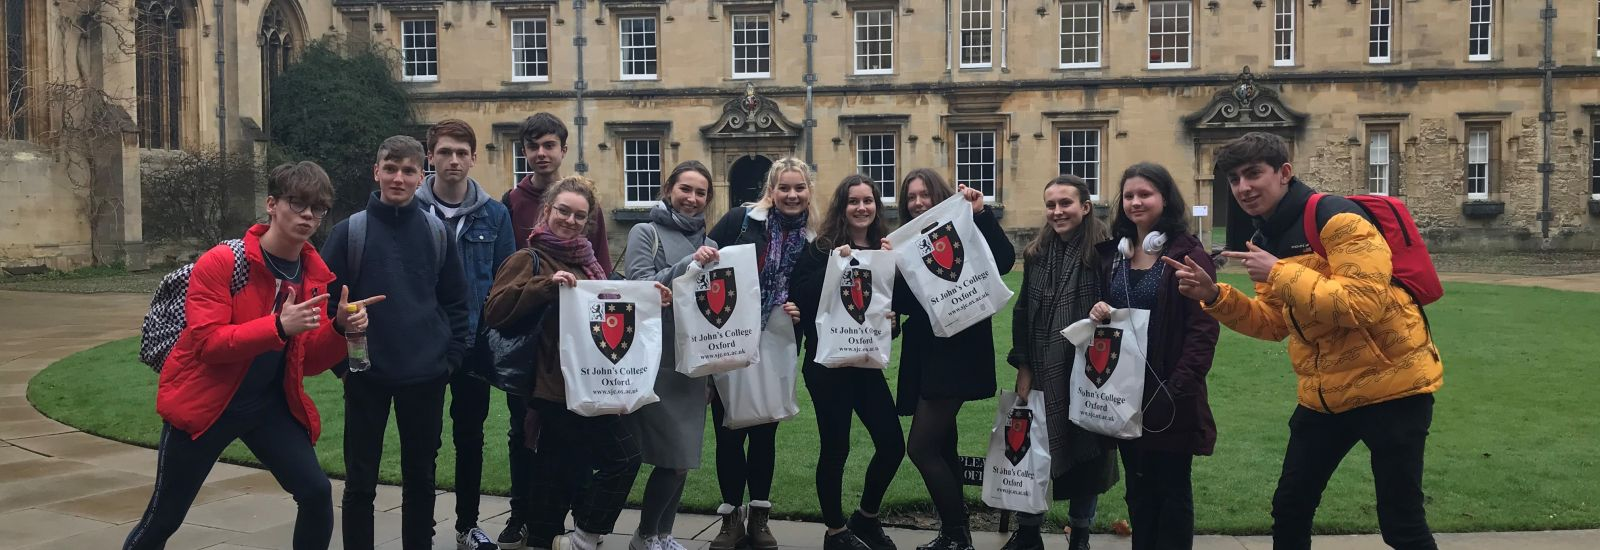 A group of secondary school pupils attending a college tour at St John's College